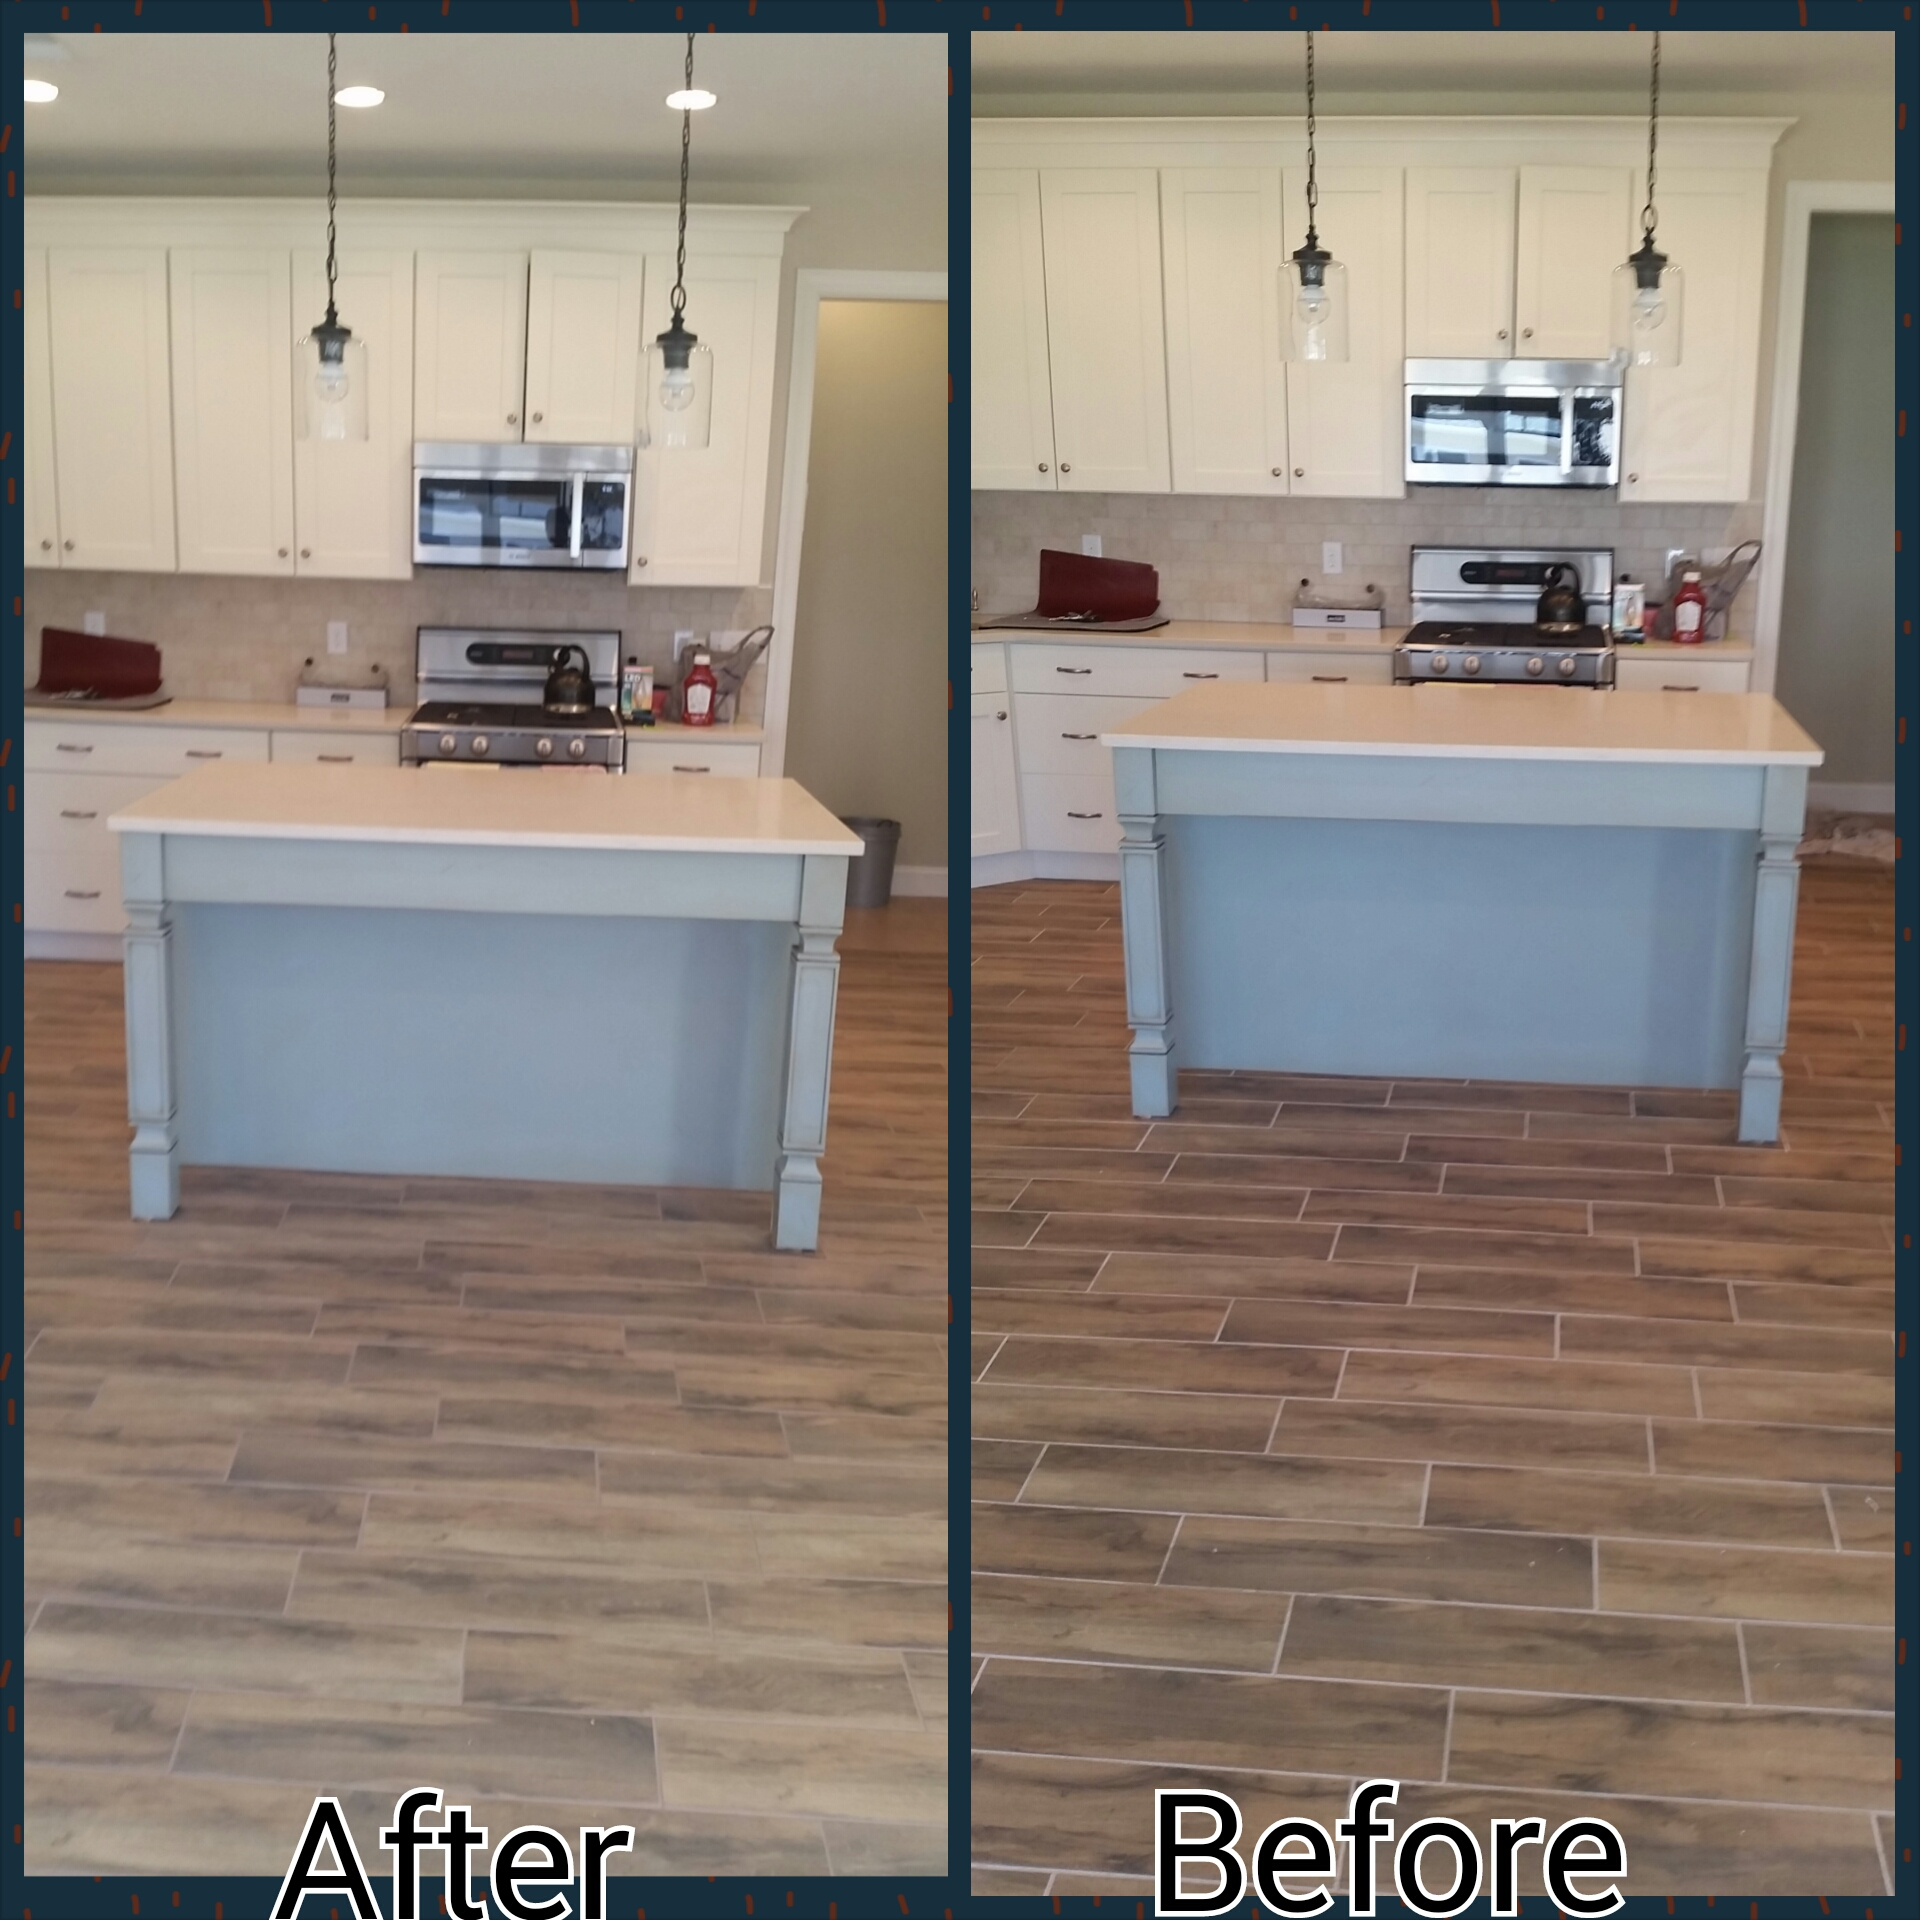 How Can You Change and Correct a Wrong Grout ColorLakewood NJ